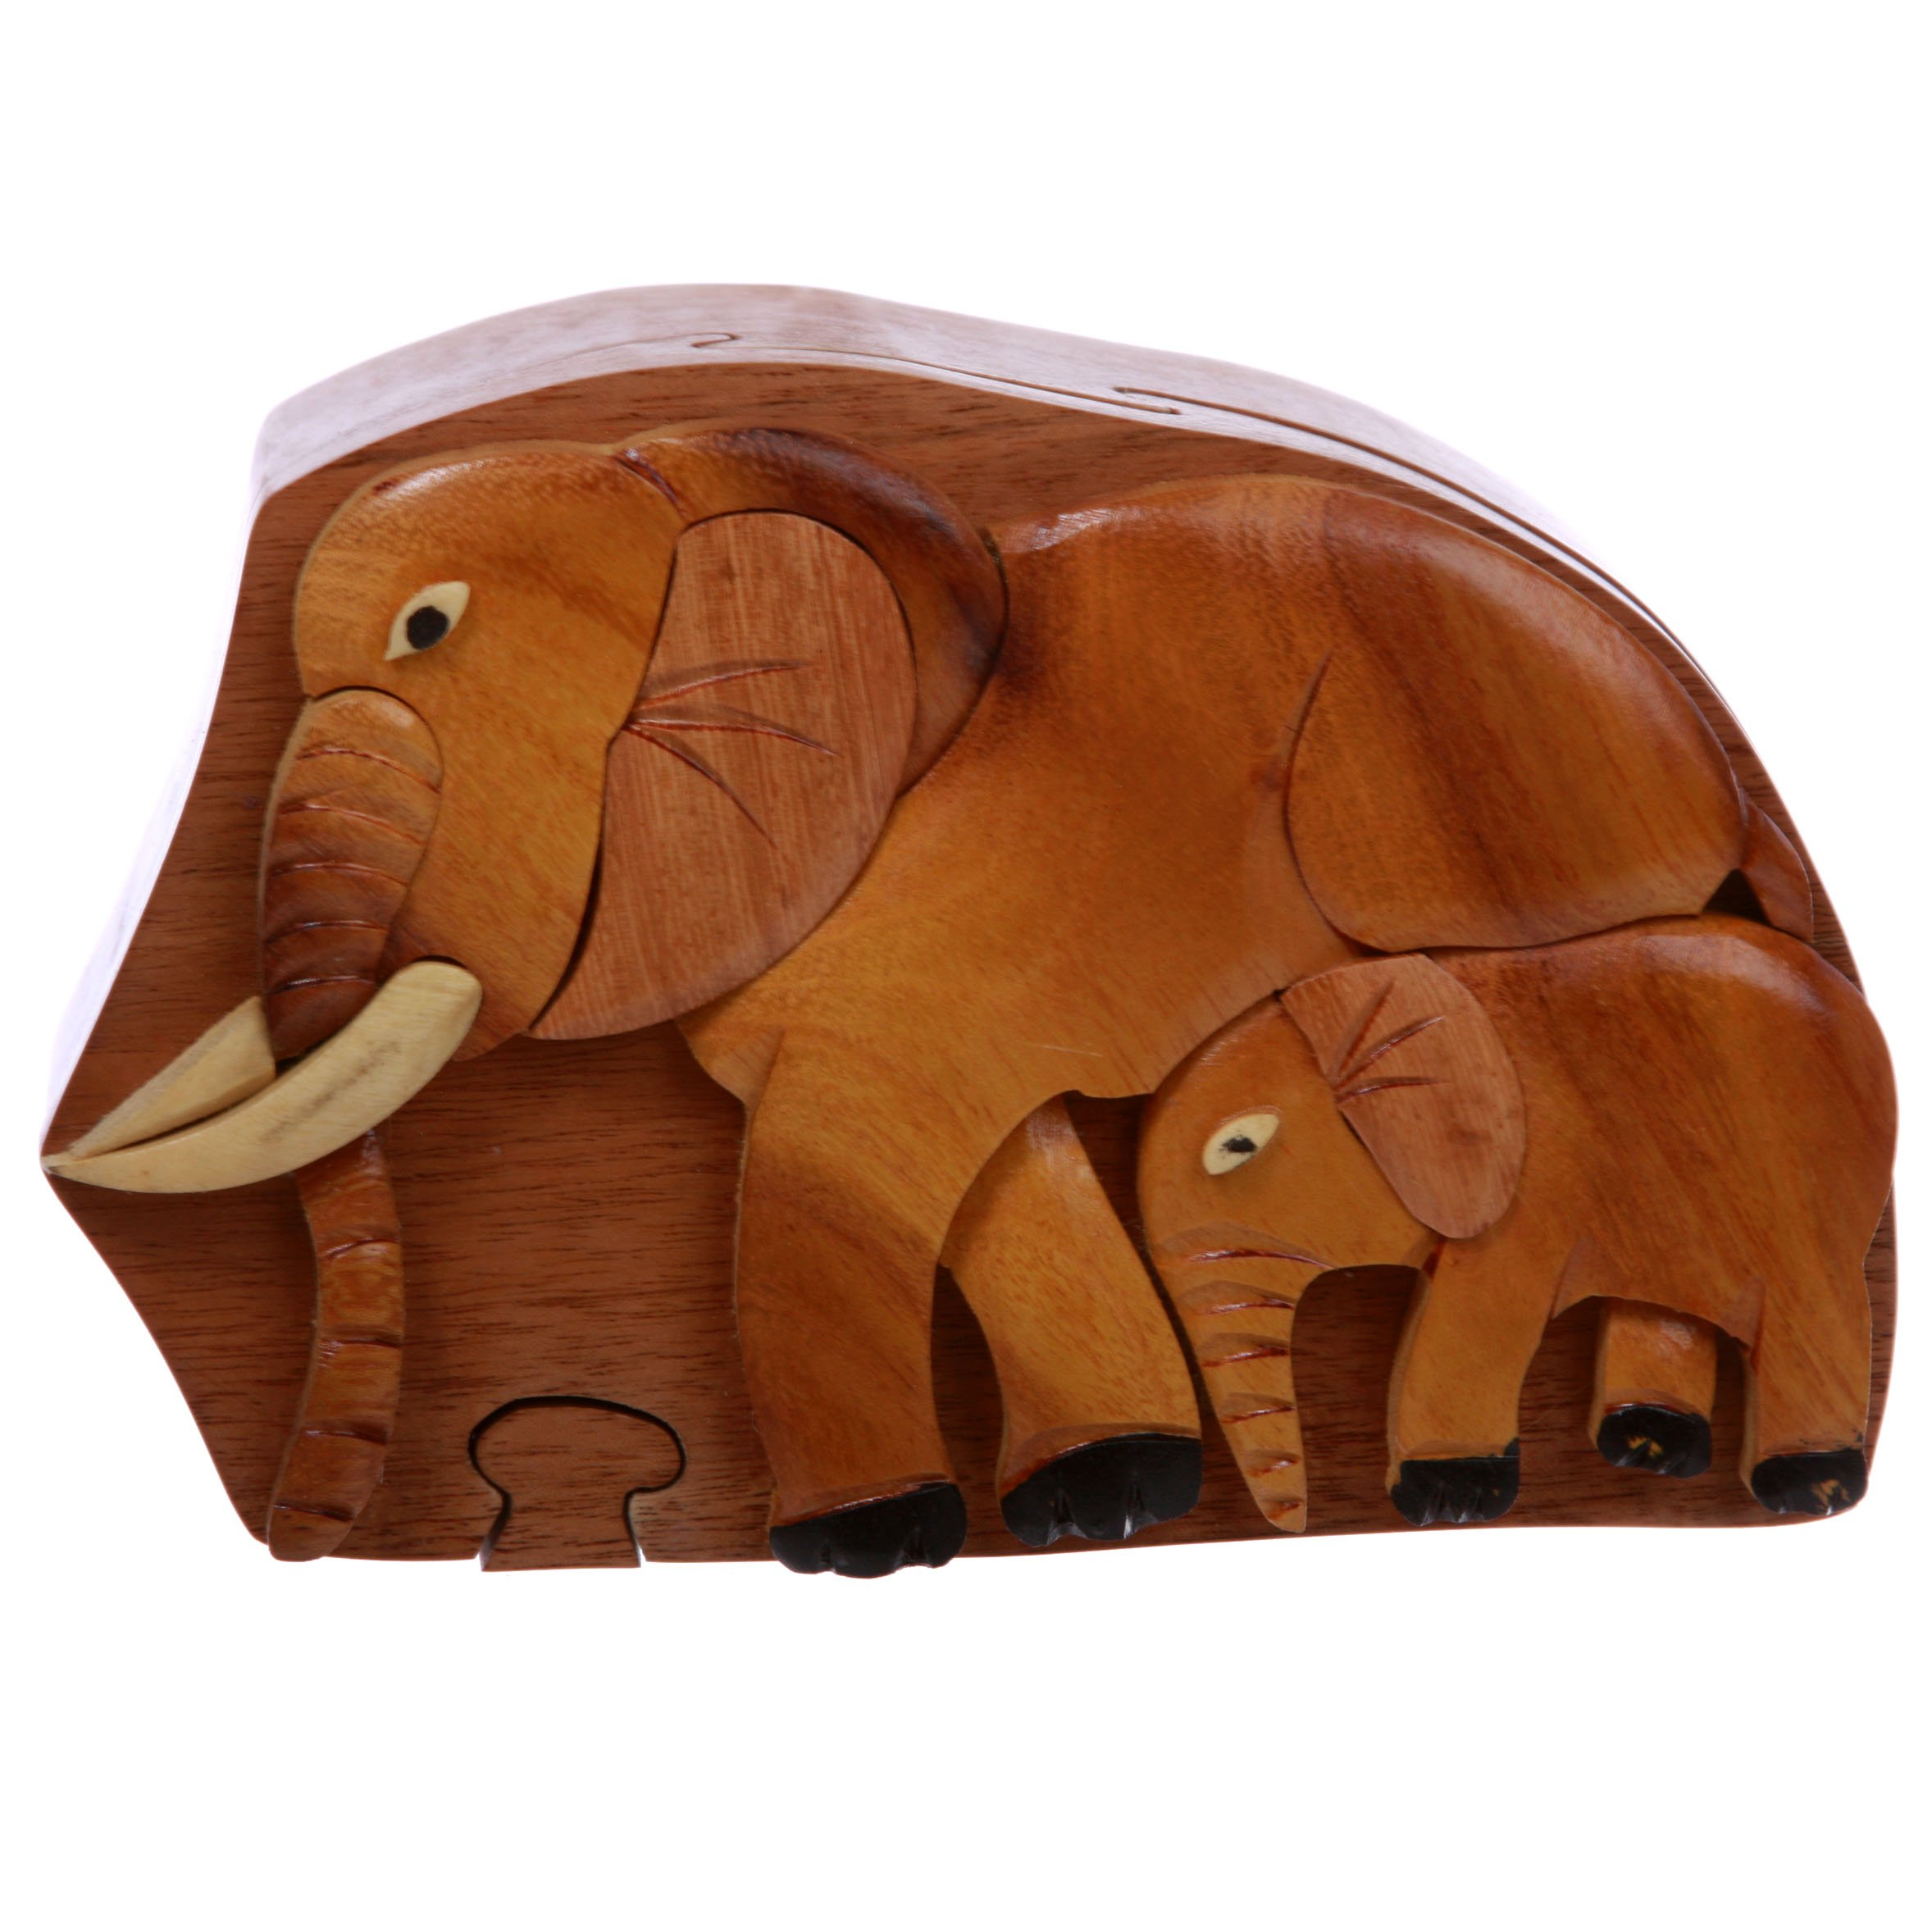 Elephant Lover Handmade Wooden Secret Jewelry Puzzle Box, Gift for Lady or Man